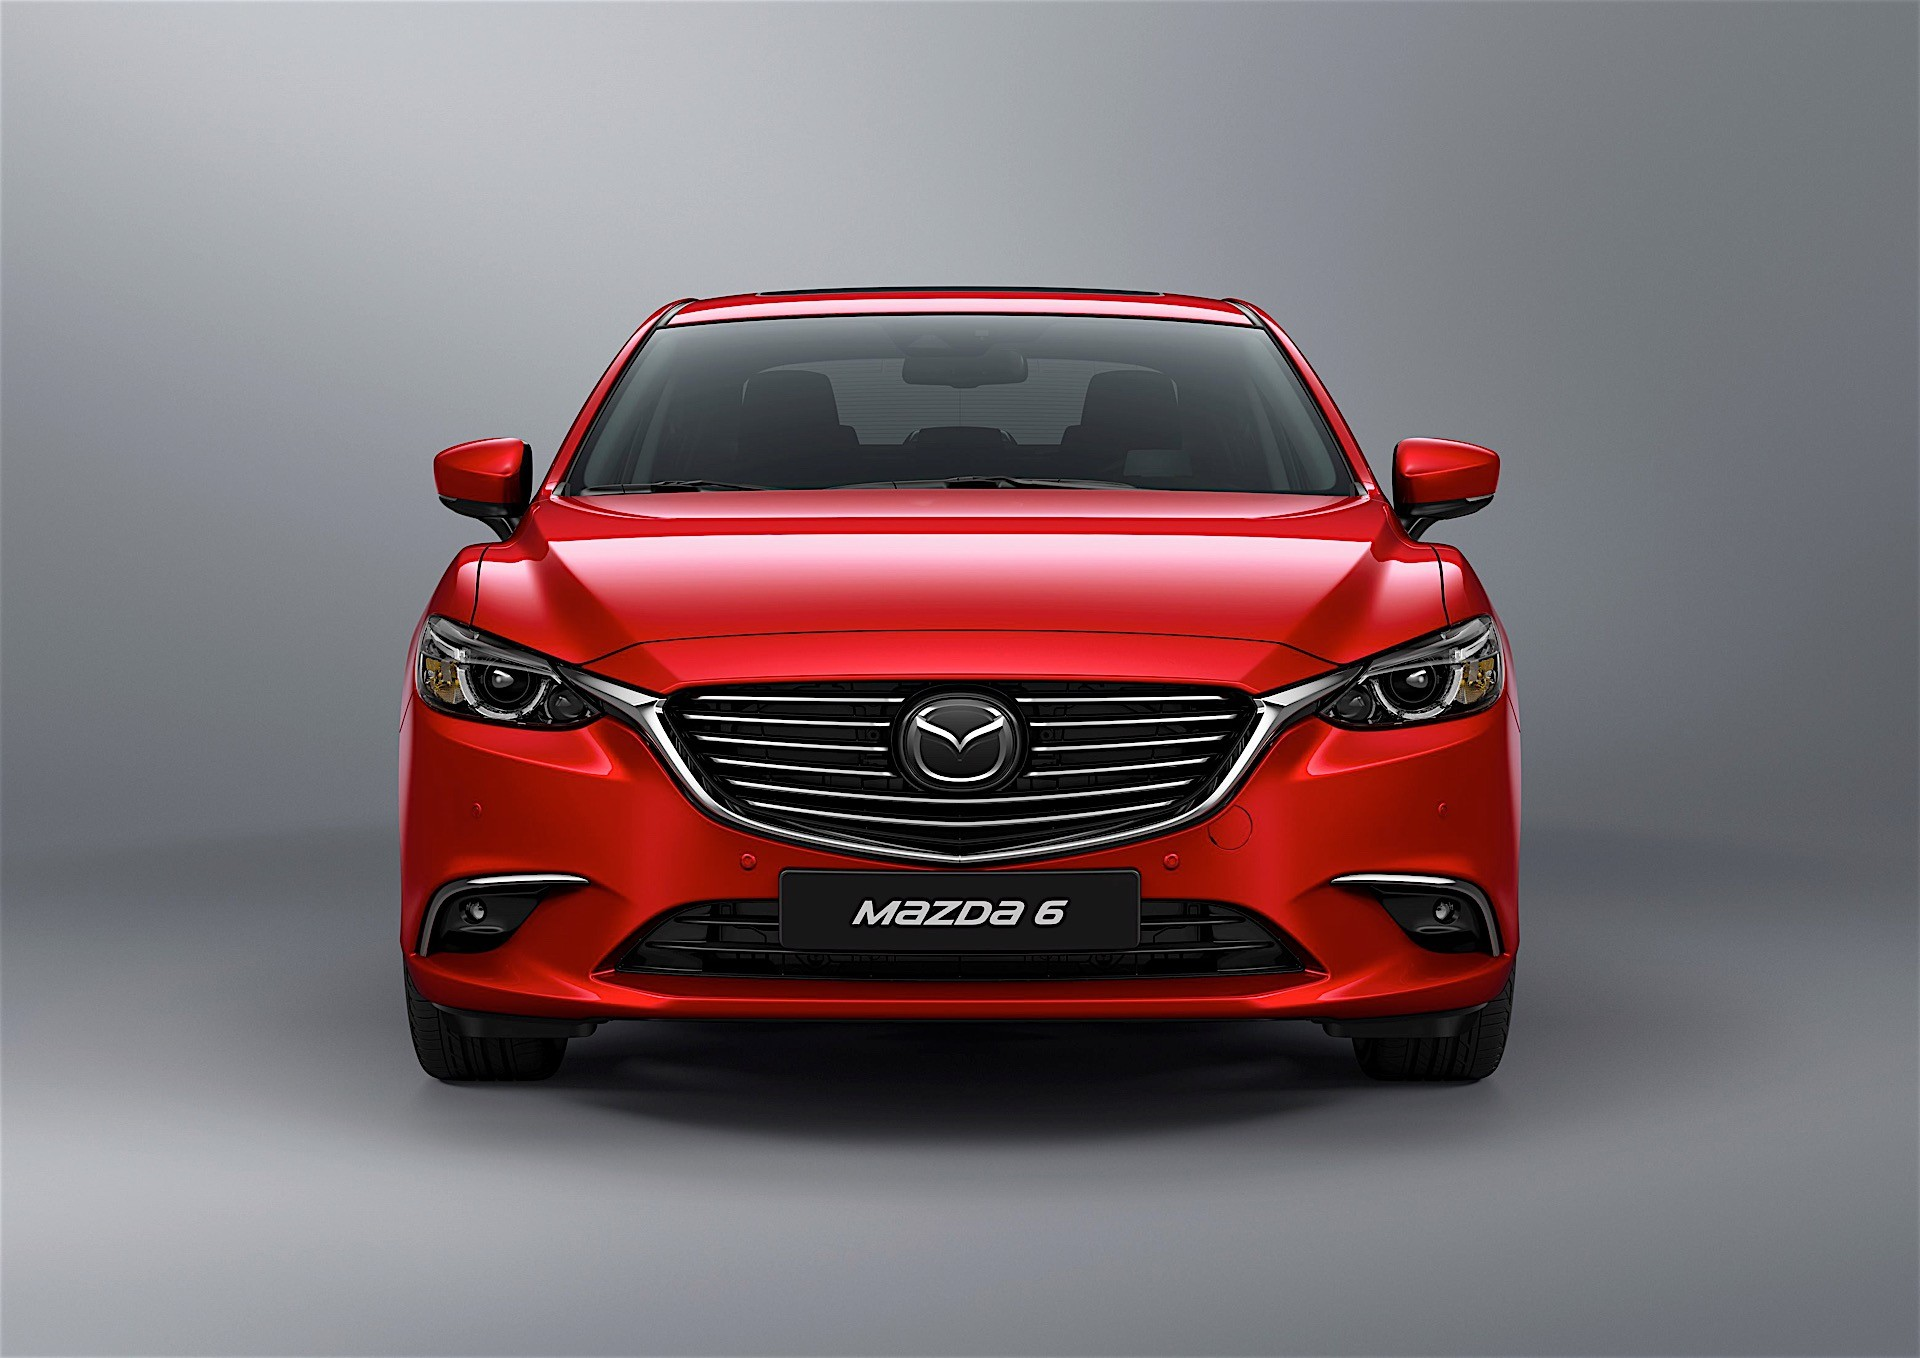 rumor 2020 mazda6 goes rwd shares toyota sourced platform with rx 9 sports car autoevolution. Black Bedroom Furniture Sets. Home Design Ideas